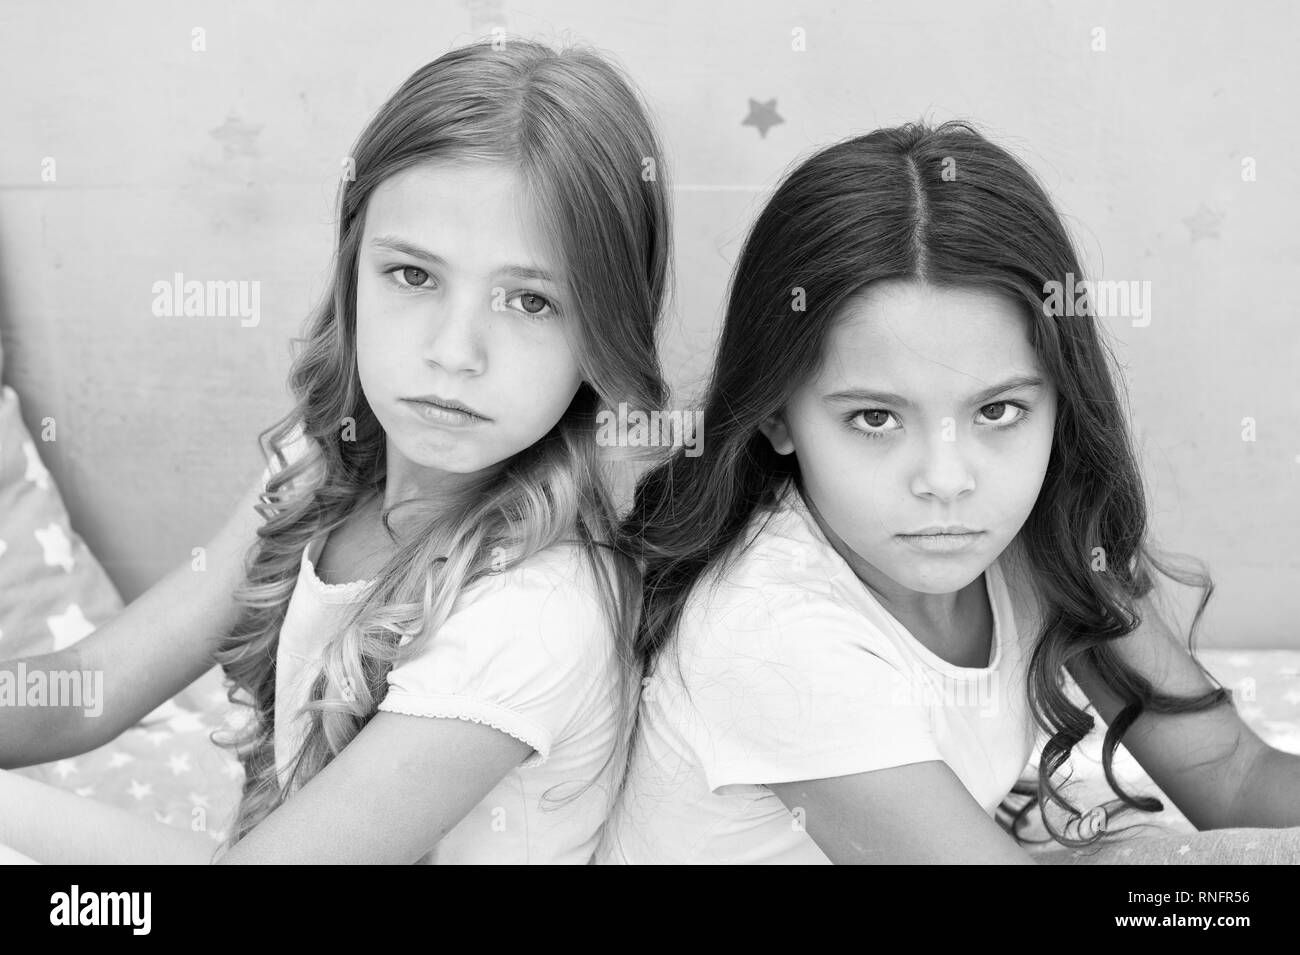 Offended feelings. Children offended keep silence. Relations sisters or best friends. Overcome relations issues. Childhood friendship. Friends sit back to back. Offended kids look seriously and sadly. - Stock Image